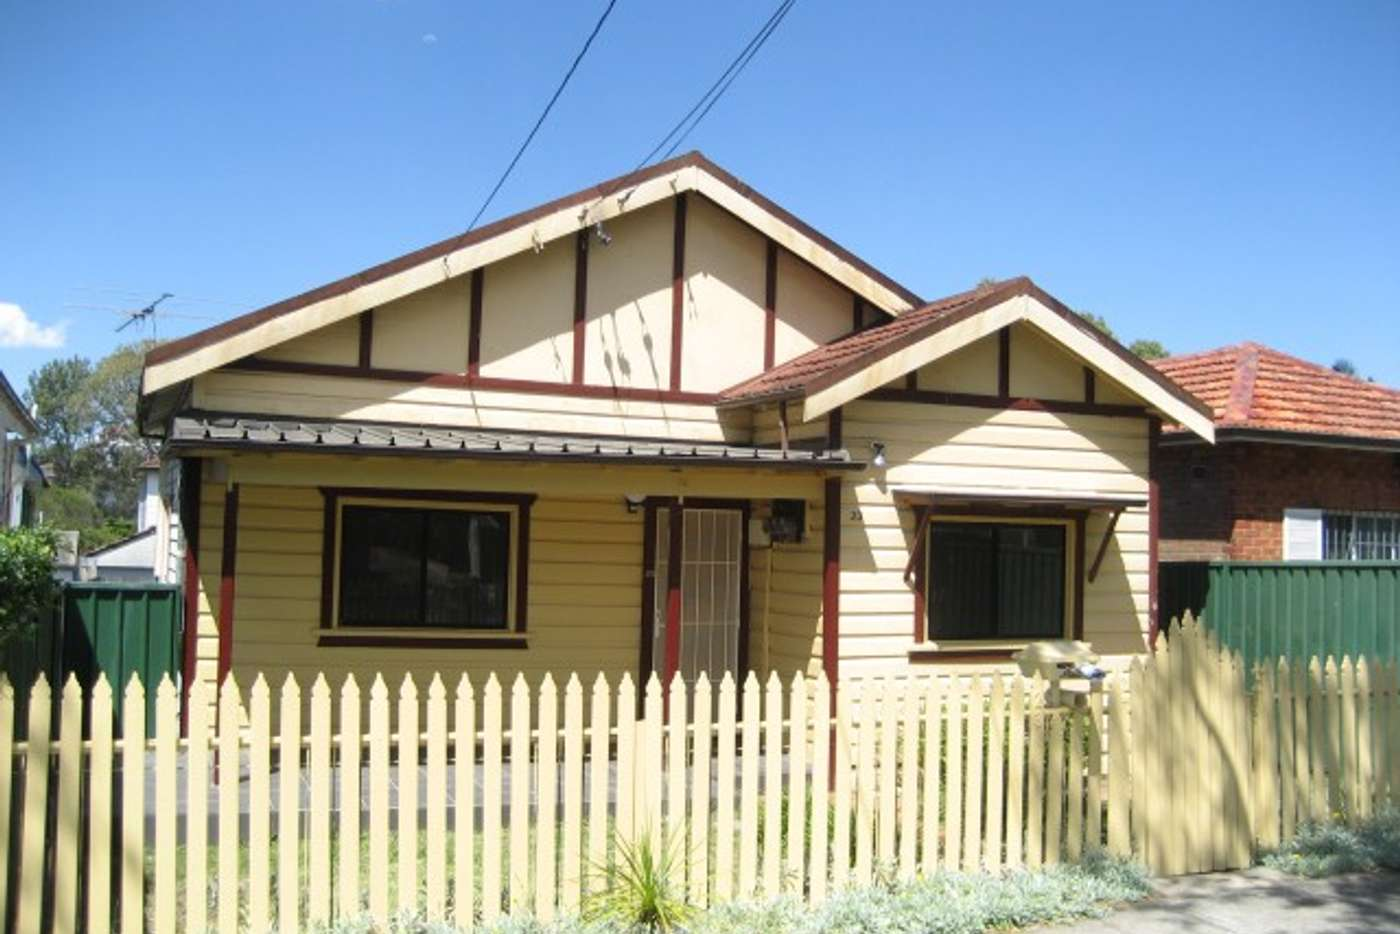 Main view of Homely house listing, 23 Defoe Street, Wiley Park NSW 2195